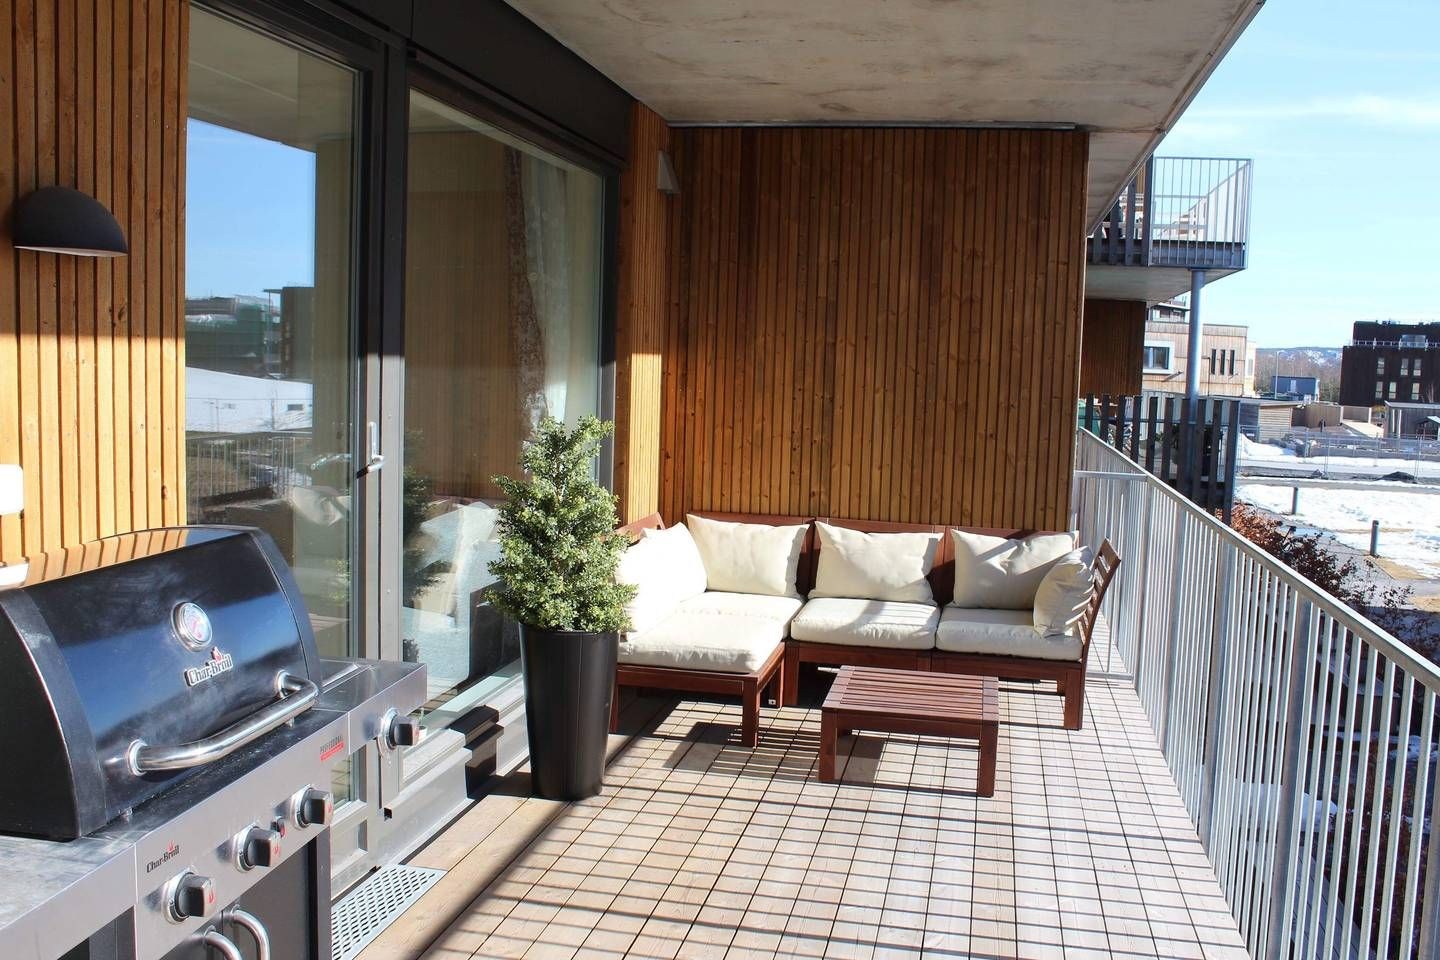 Image Result For Large Balcony Decorating Ideas Outdoor Sectional Sofa Home Decor Outdoor Sectional